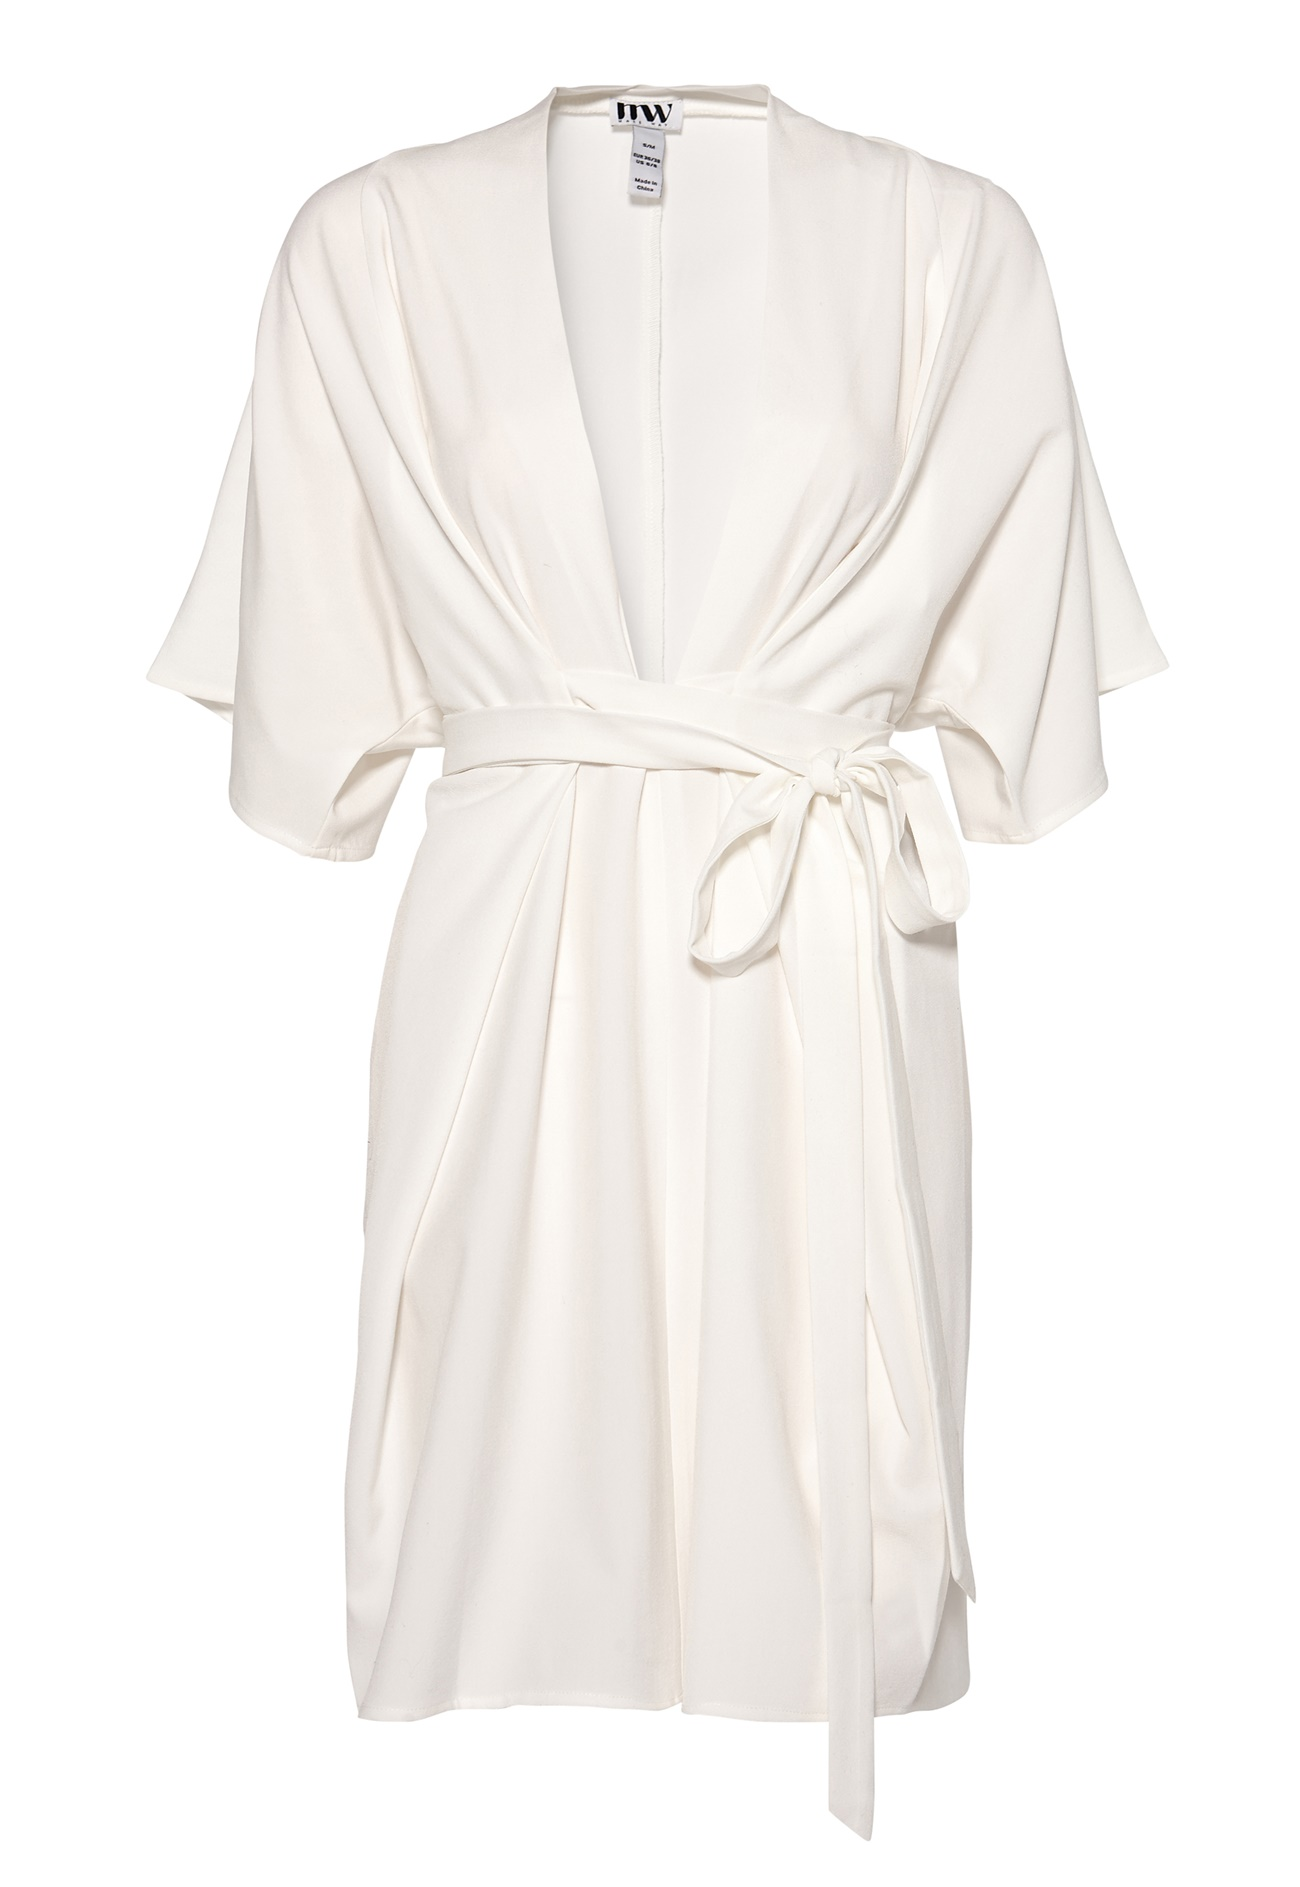 Make Way Karmen Kimono Dress White - Bubbleroom